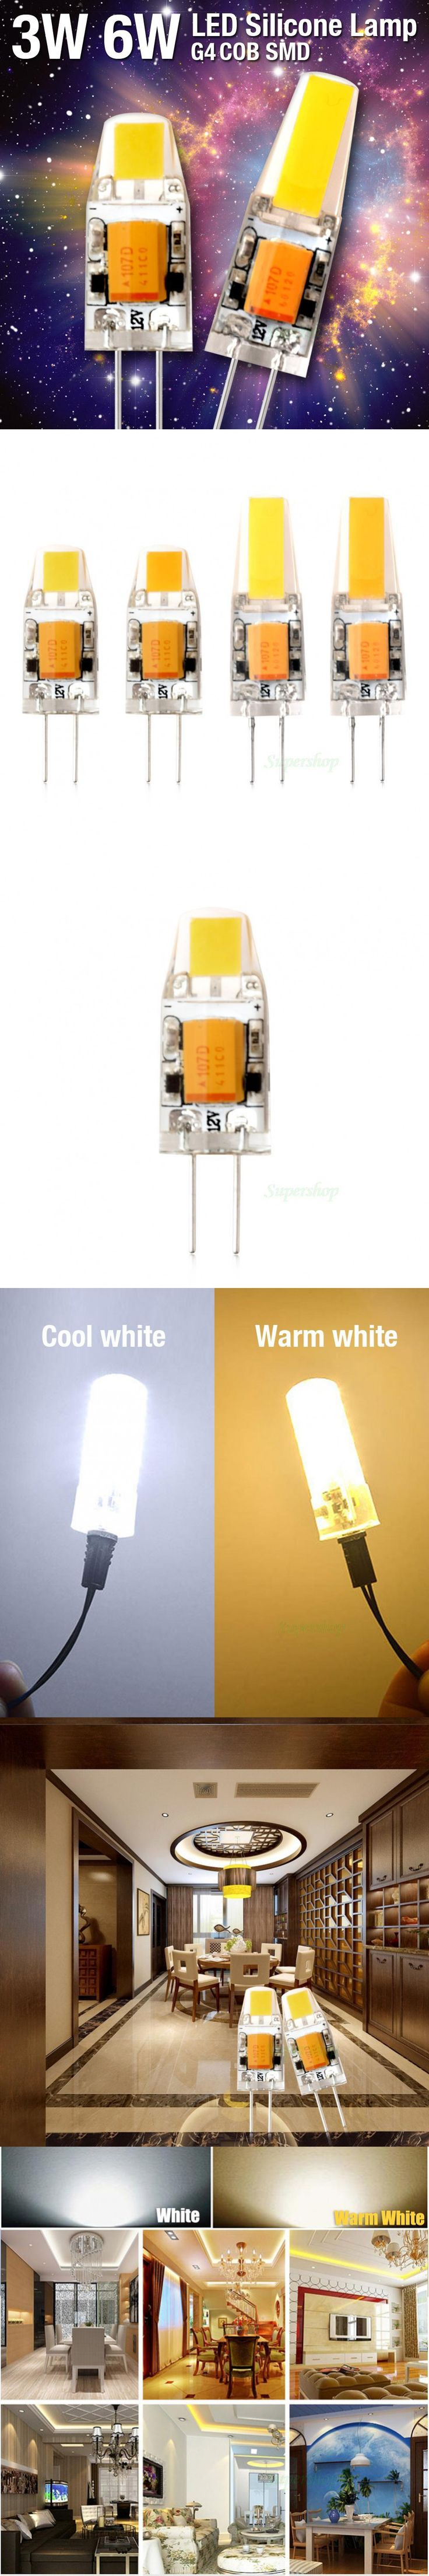 2016 New Recommend AC/DC 3W 6W spotlight High Quality Warm White Lamp Bedroom Bulb Chandelier Light Tube G4 COB LED 12V Dimmable